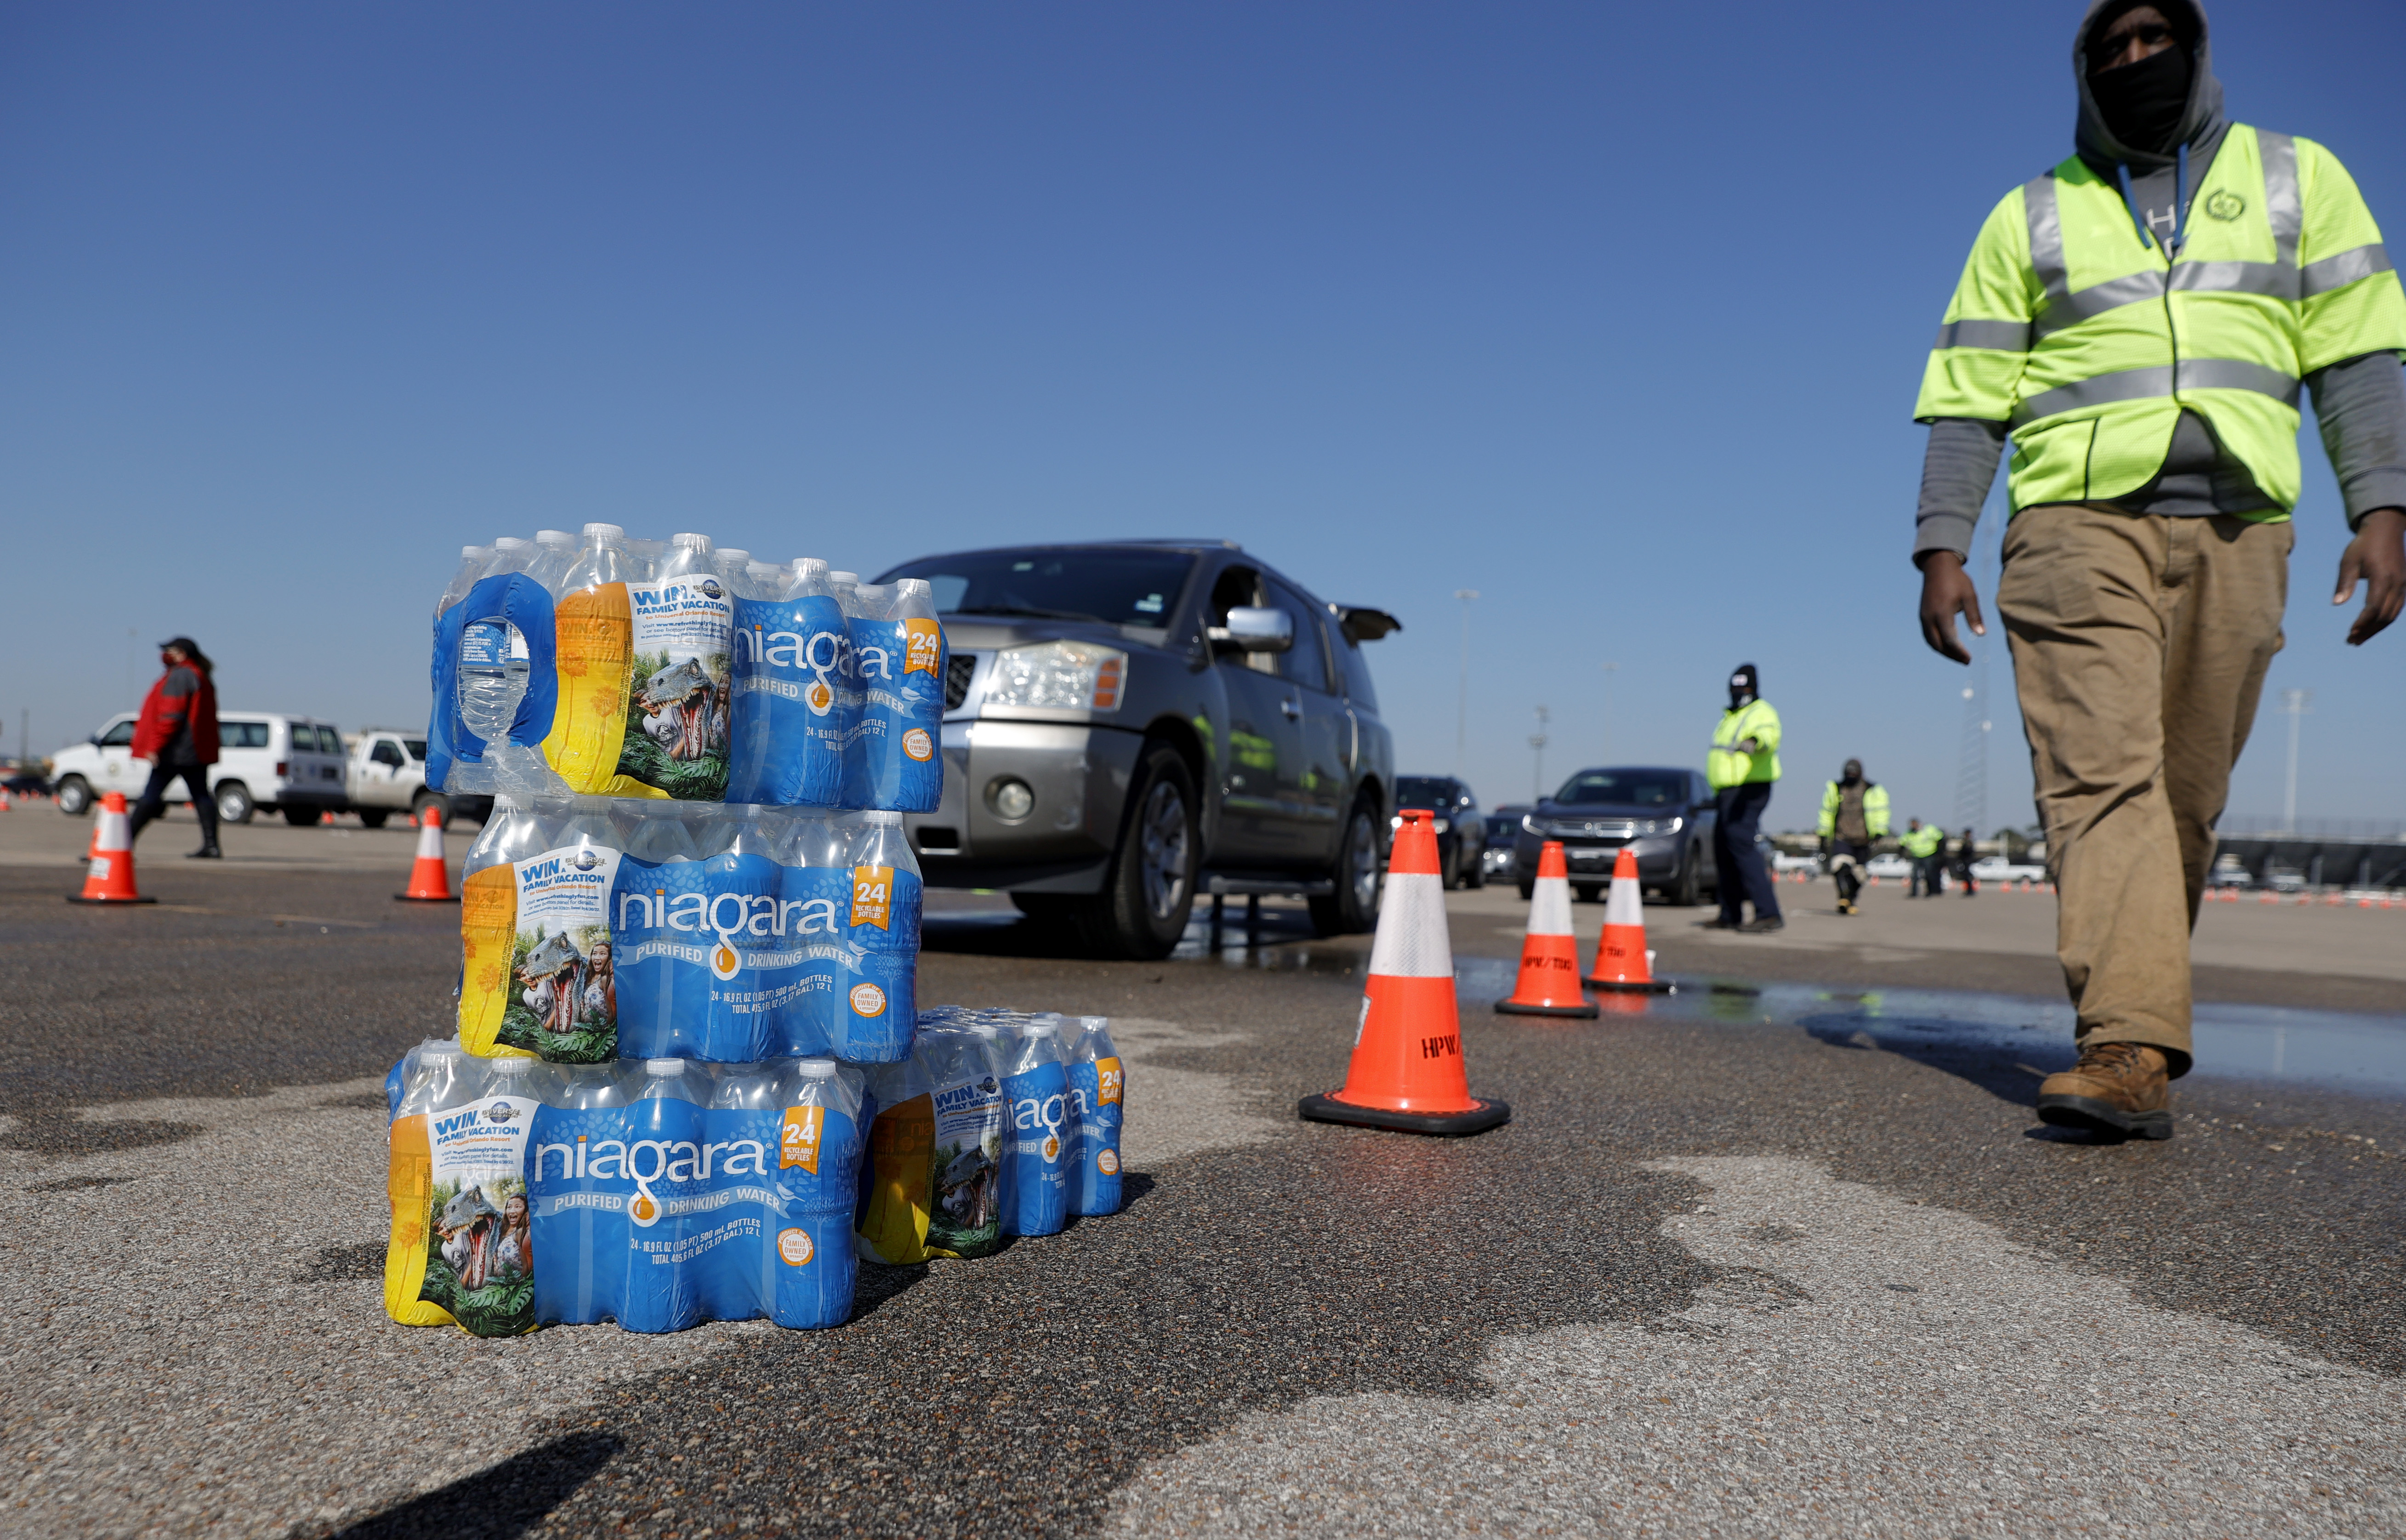 A Black man in a reflective neon vest walks toward piled cases of water, as cars line up behind him.